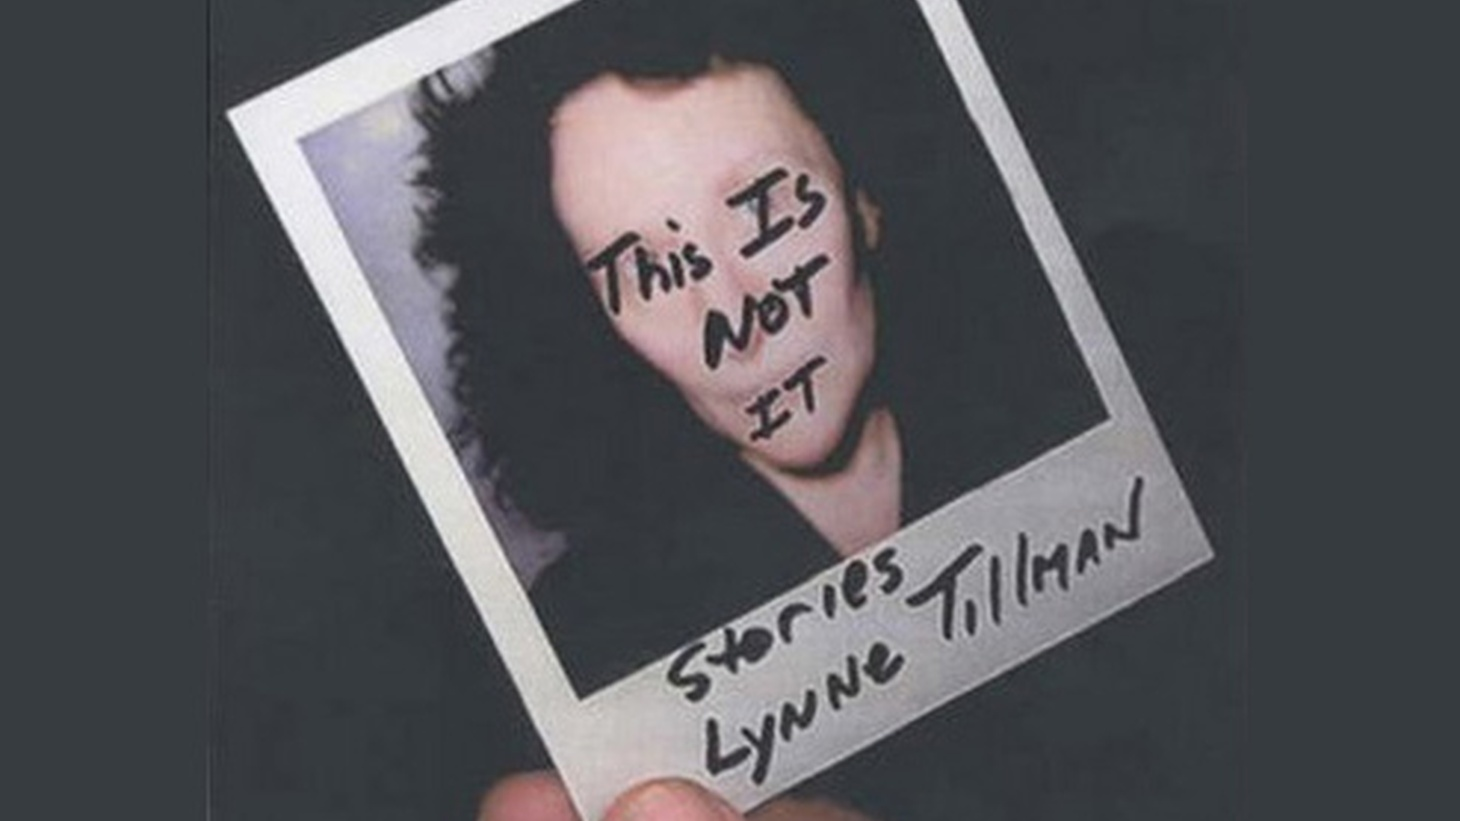 Lynne Tillman's startling stories attempt to discover new connections between art and reality...